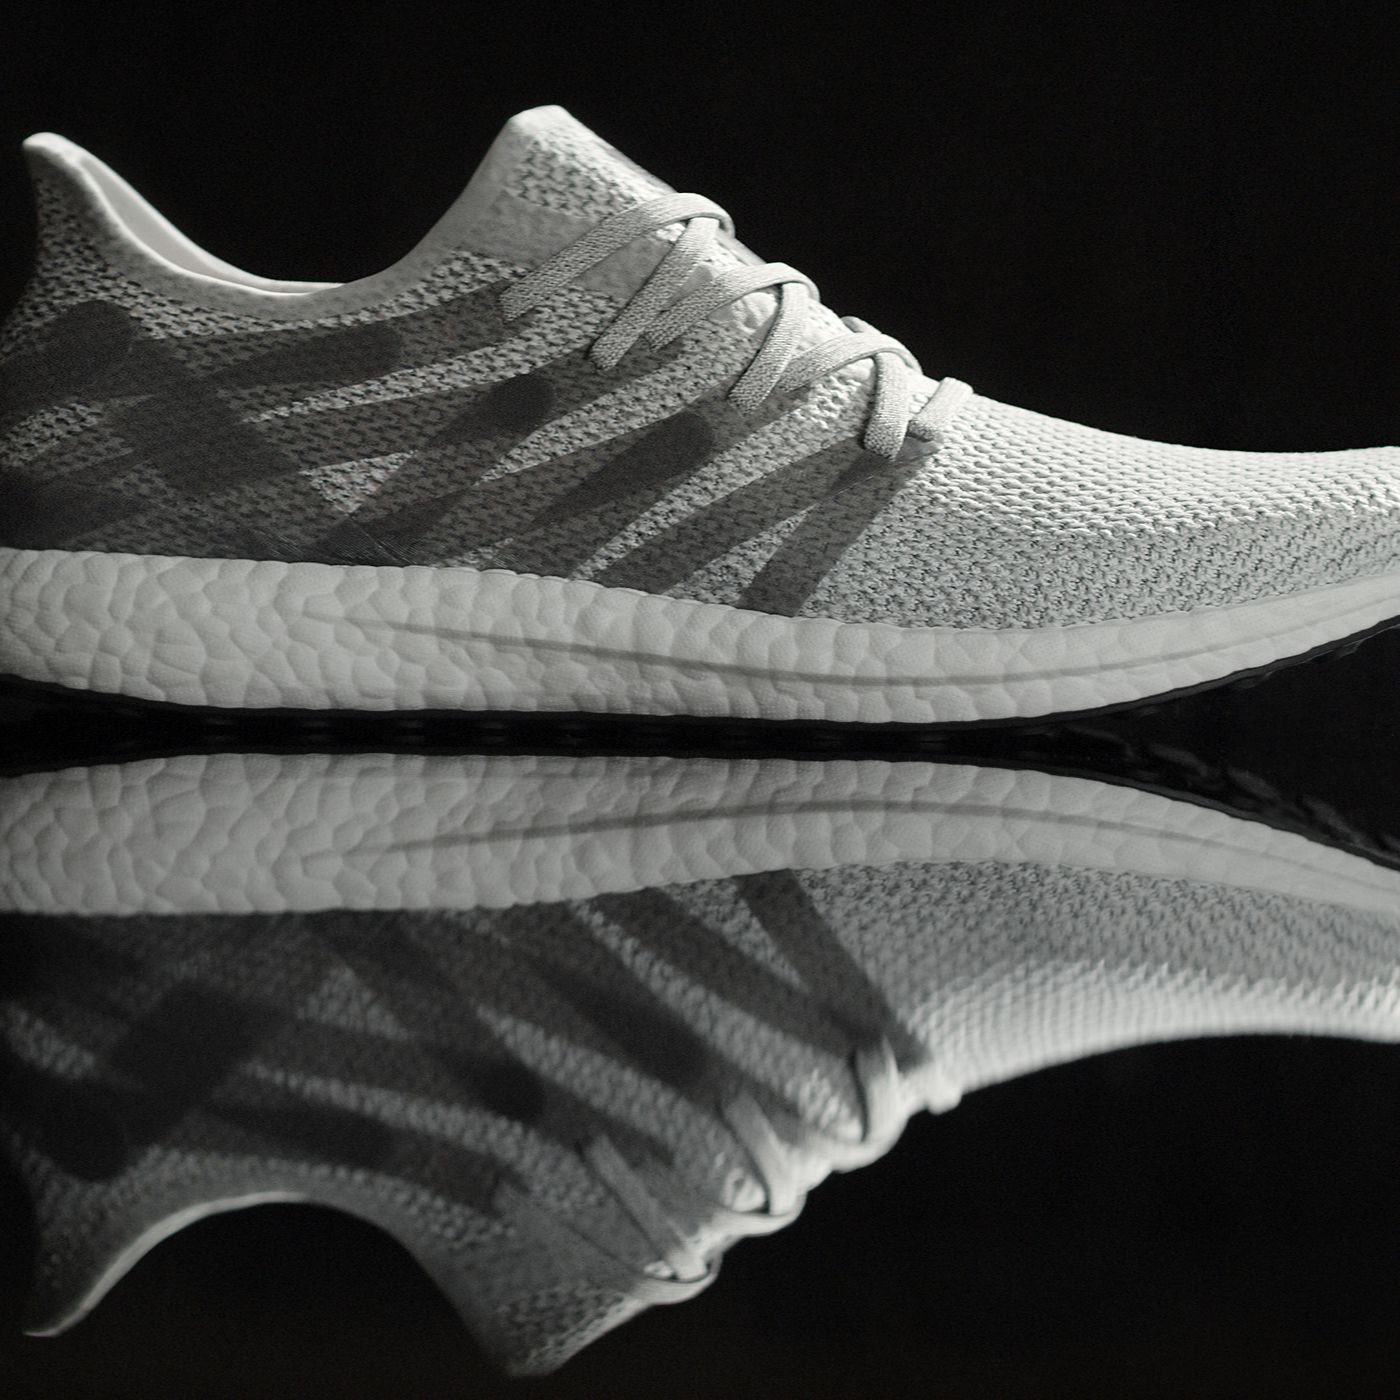 llamada Supervivencia la nieve  This is the first Adidas shoe made almost entirely by robots - Vox